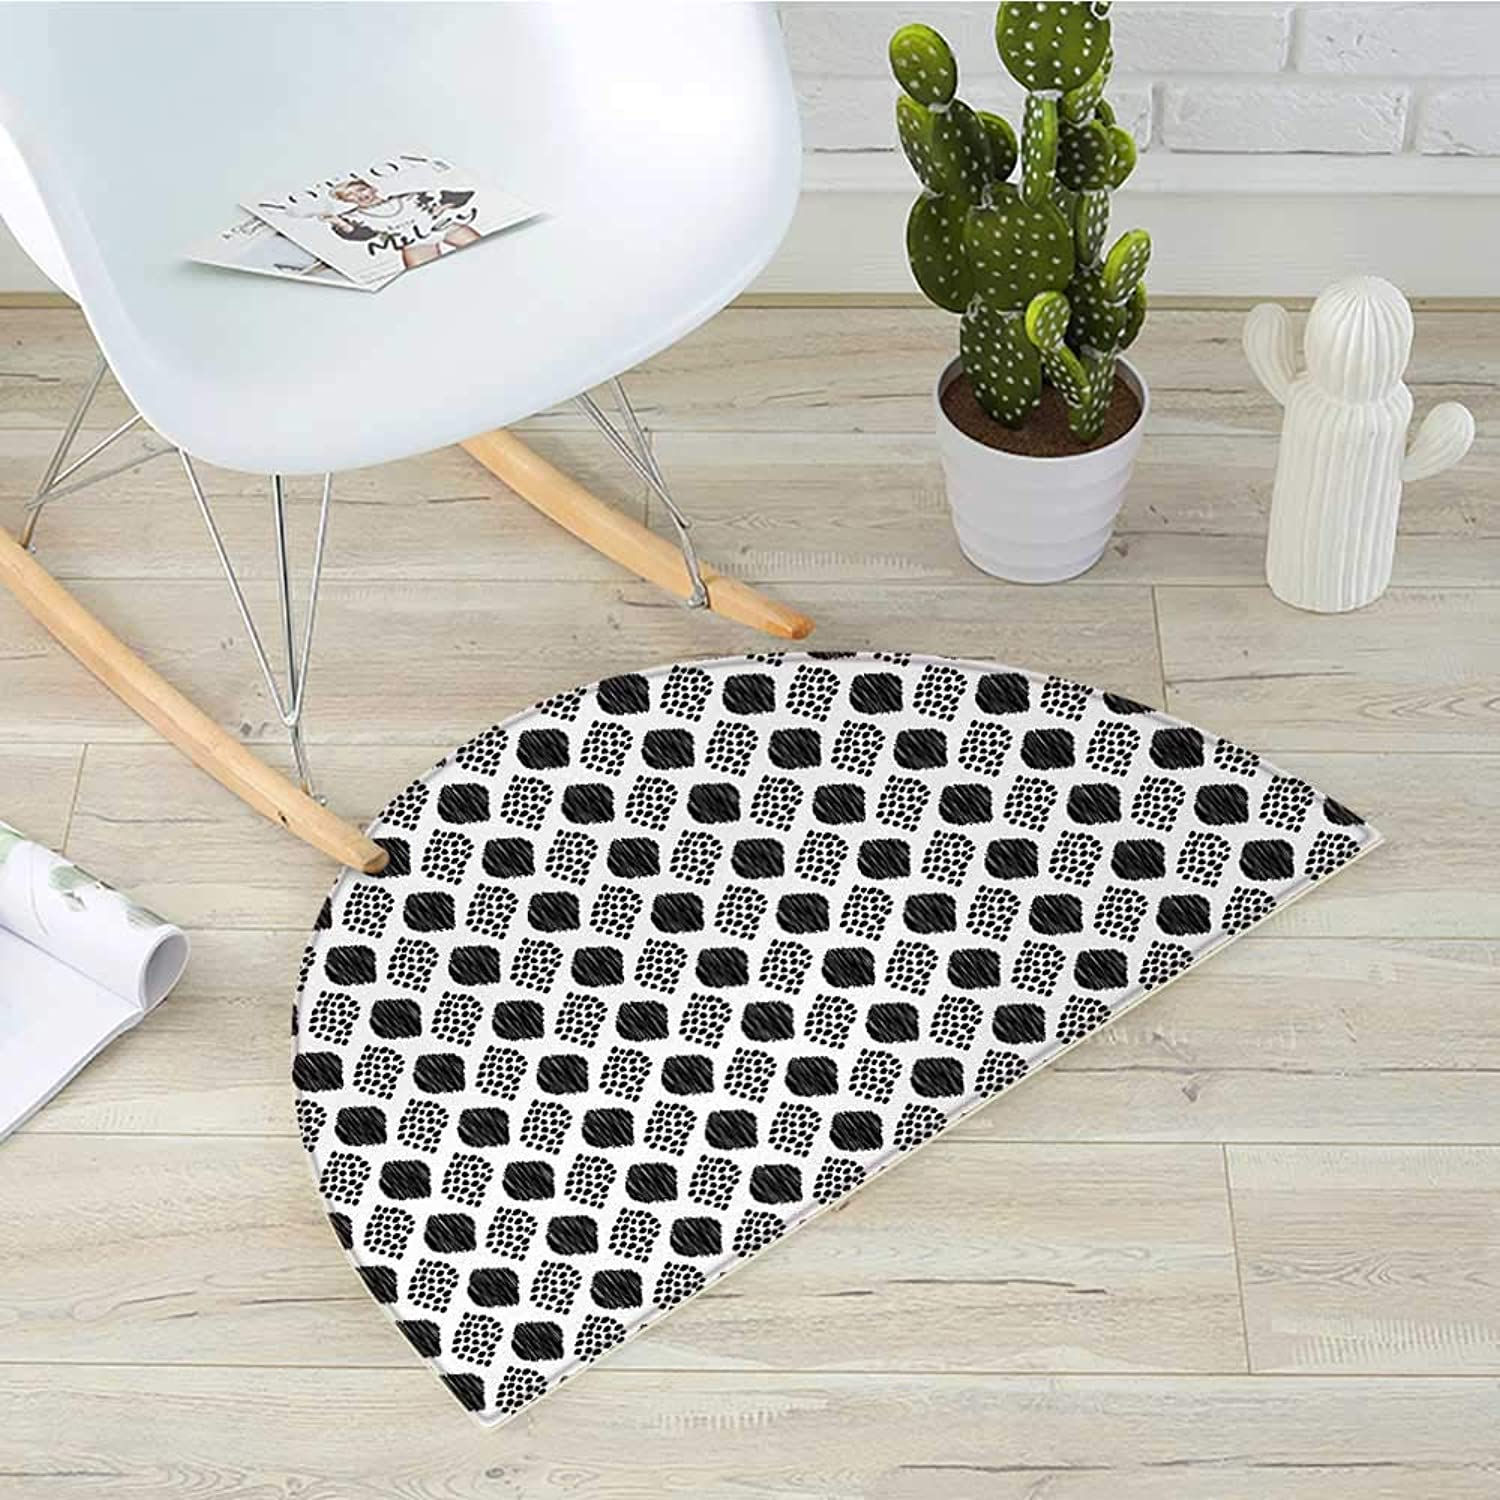 Black and White Semicircle Doormat Scribble Pattern with Abstract Black Dotted Leaves on White Background Halfmoon doormats H 39.3  xD 59  Black White